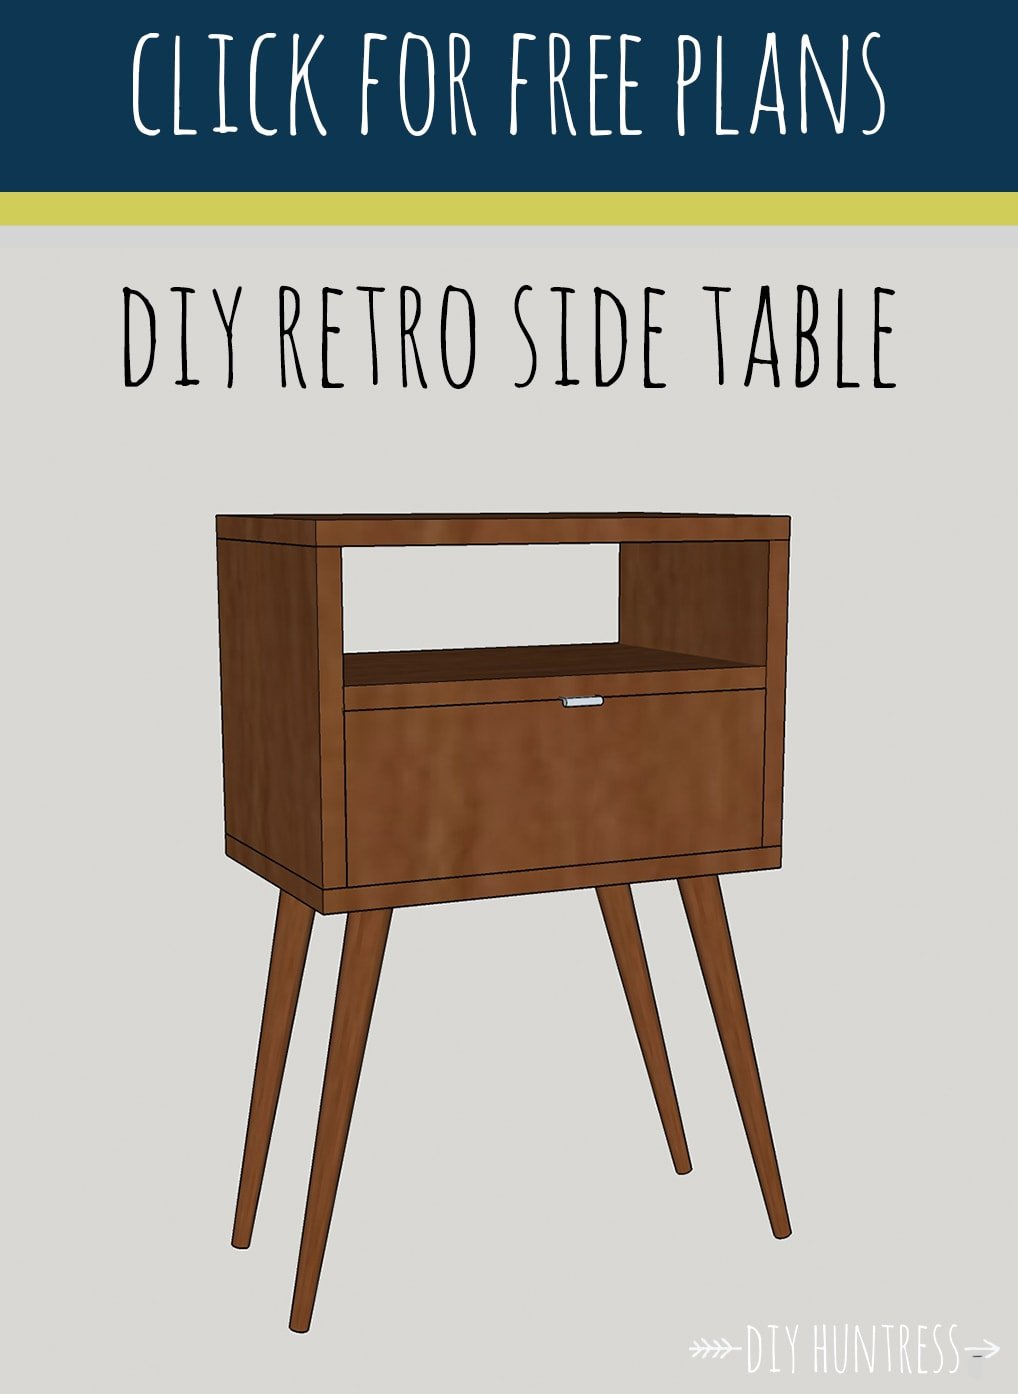 diy_retro_side_table_diy_huntress_plans